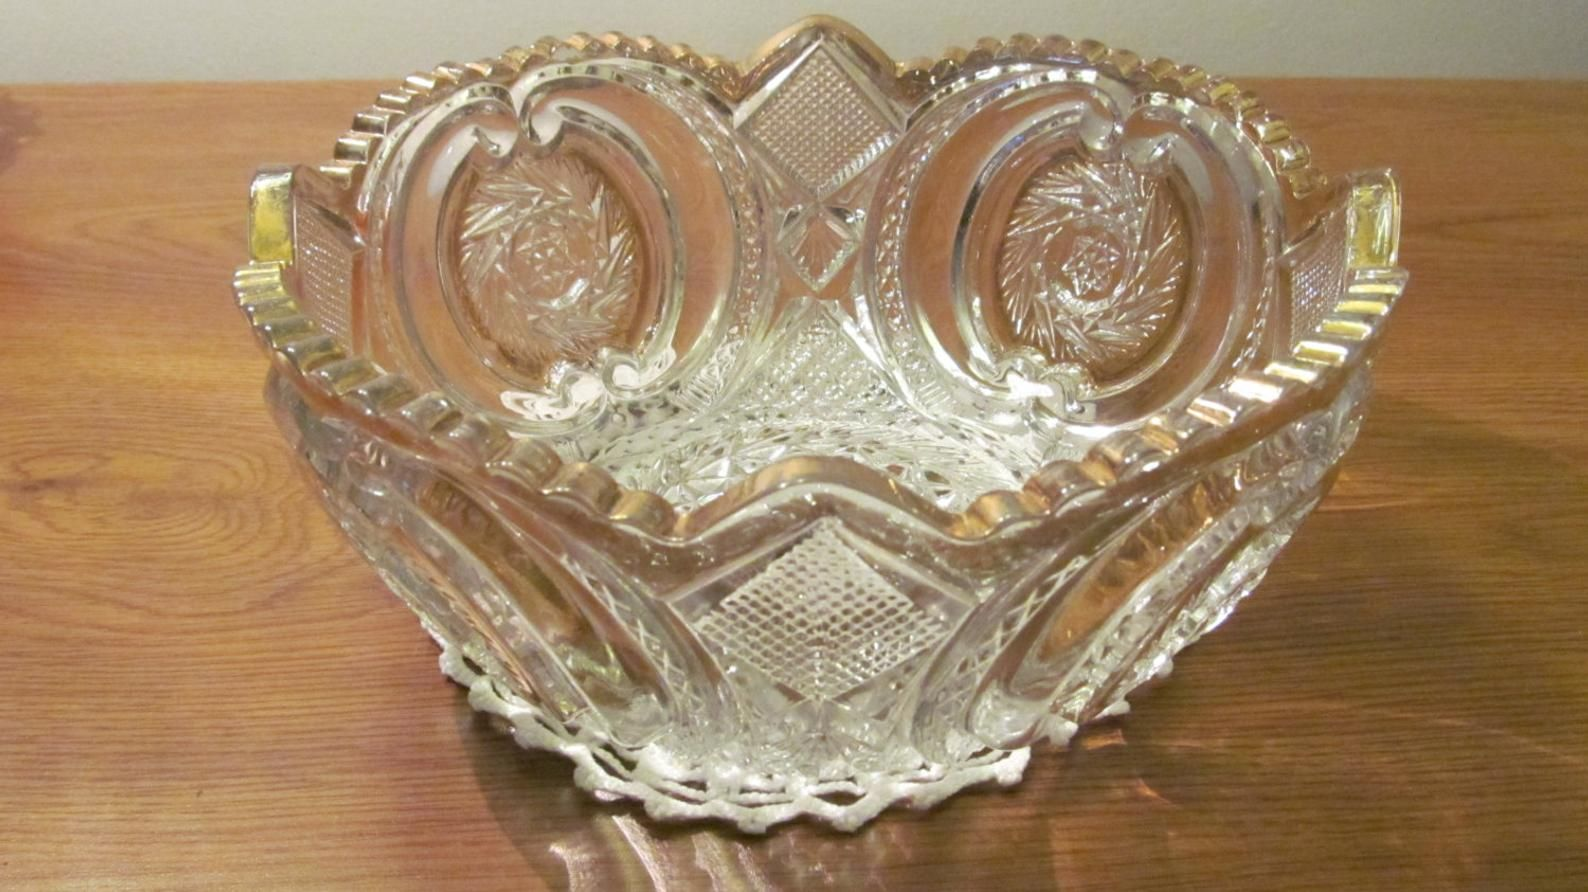 Mikasa Crystal serving plate dish   round divided relish 13 inch  footed  with grape design Germany vintage 1970s